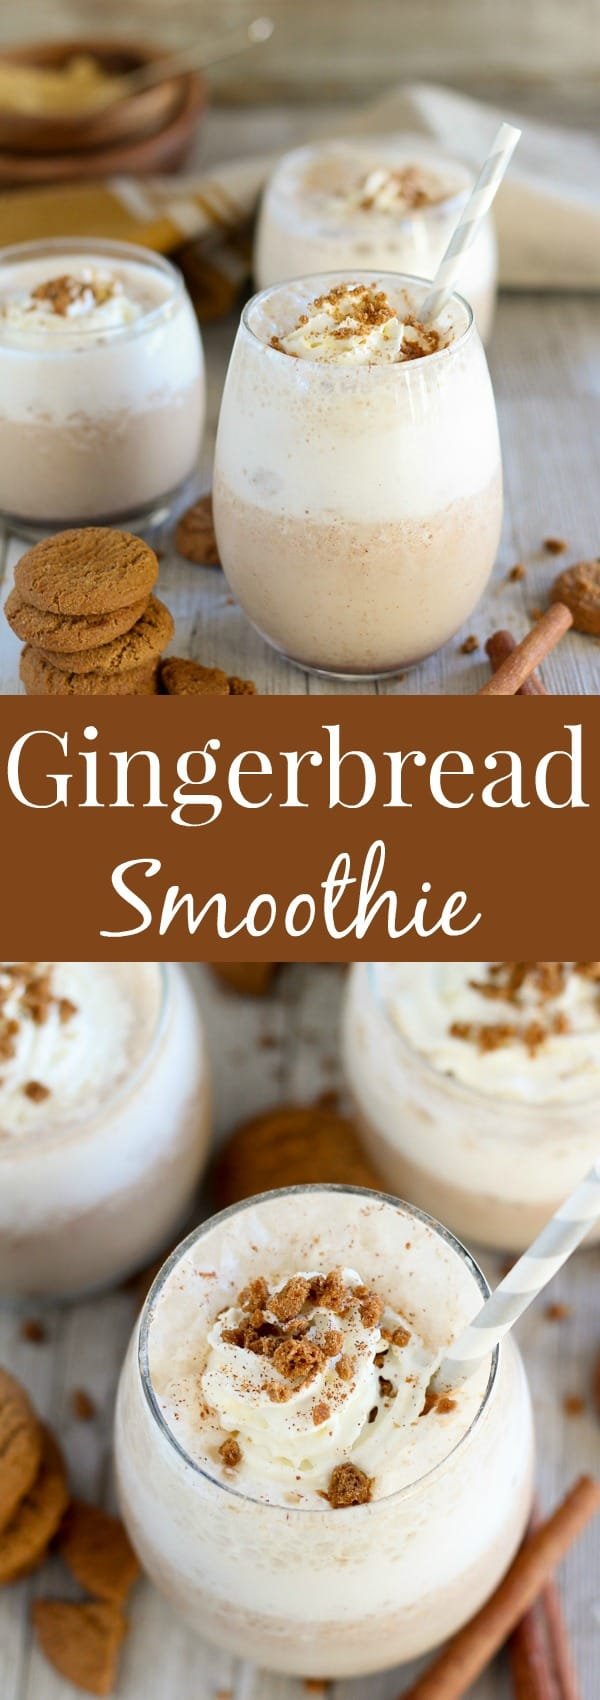 Gingerbread Smoothie - A healthy Gingerbread Smoothie loaded with classic gingerbread flavor. A quick and easy breakfast, snack, or dessert for the holiday season.